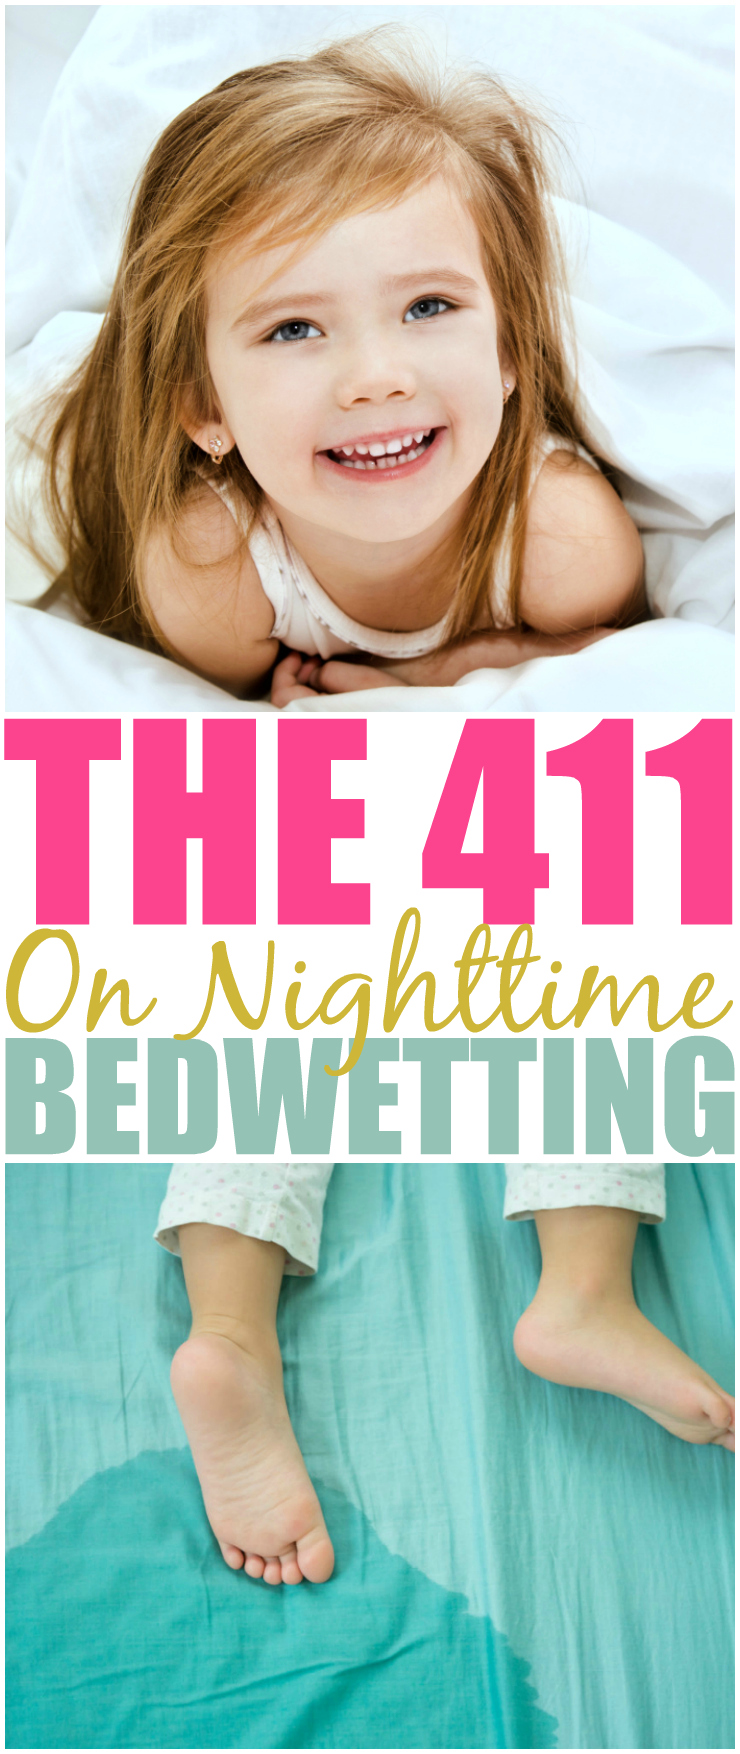 The 411 On Nighttime Bedwetting